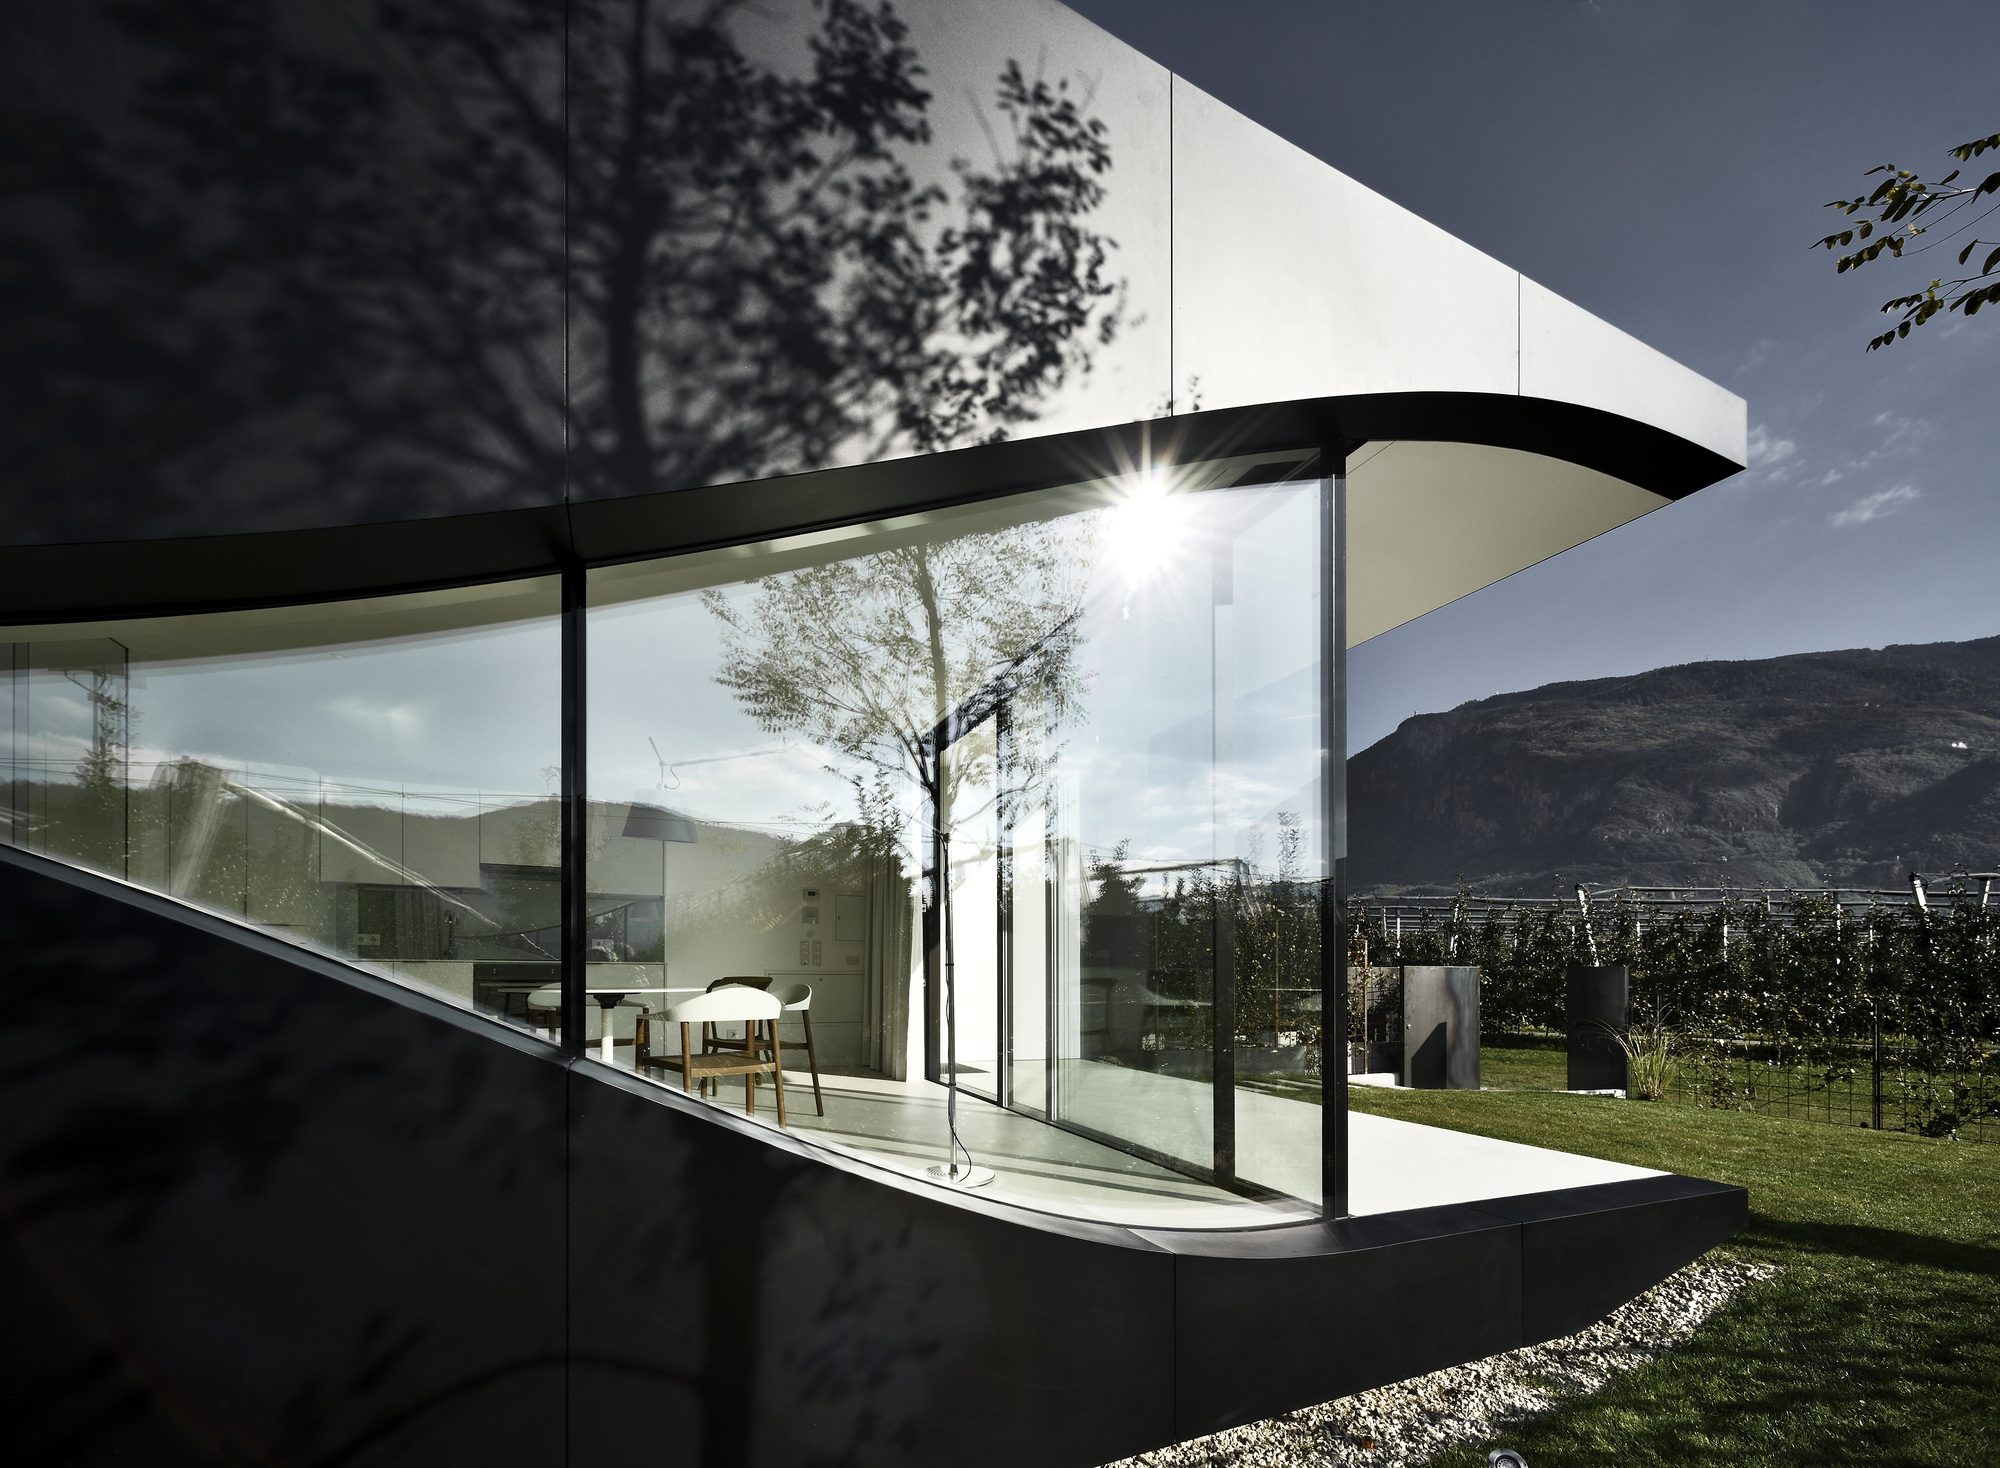 The Mirror Houses / Peter Pichler Architecture (10)